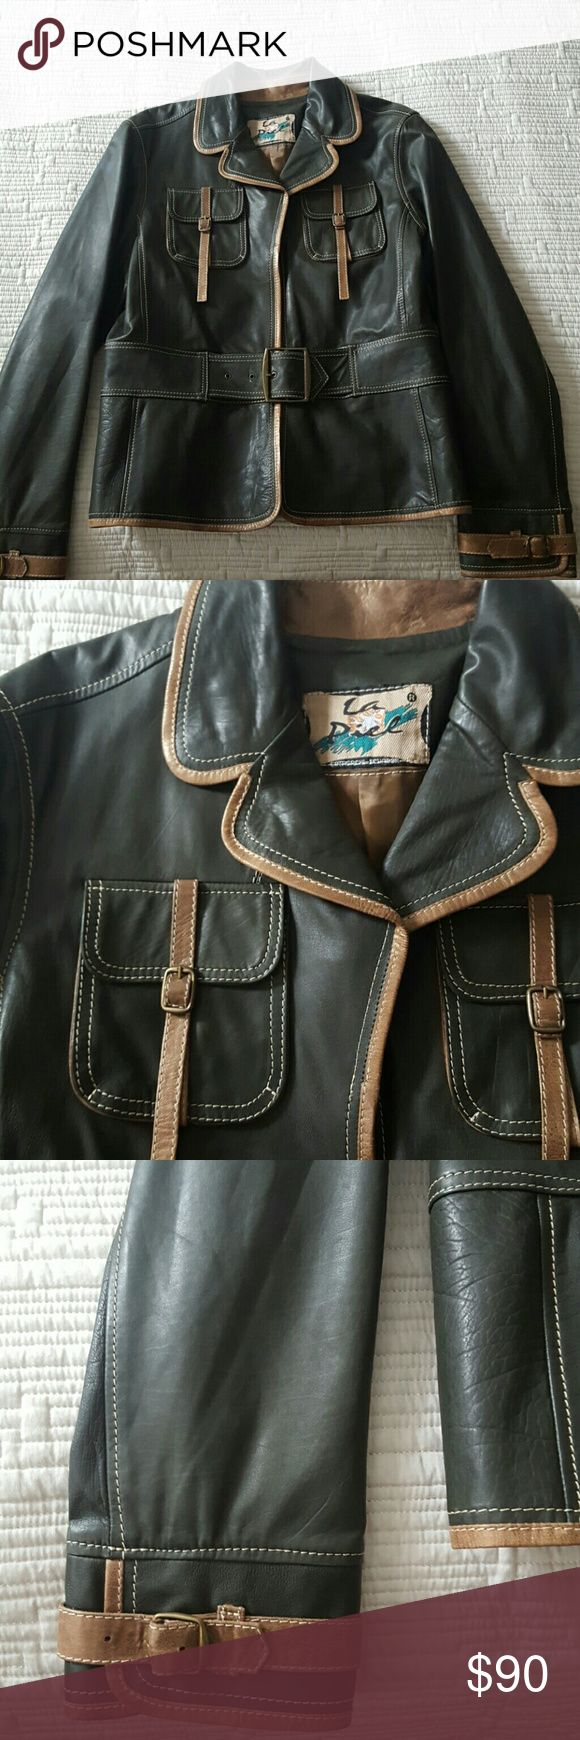 Custom Leather Jacket made in Ecuador Custom olive and bronze leather jacket made in Cotacachi, a charming Ecuadorian town known for fine leather crafting. Supple leather, fully lined. Jacket falls at hips, lower back. Only worn a few times. Very well taken care of. Minimal signs of wear. La Piel Jackets & Coats